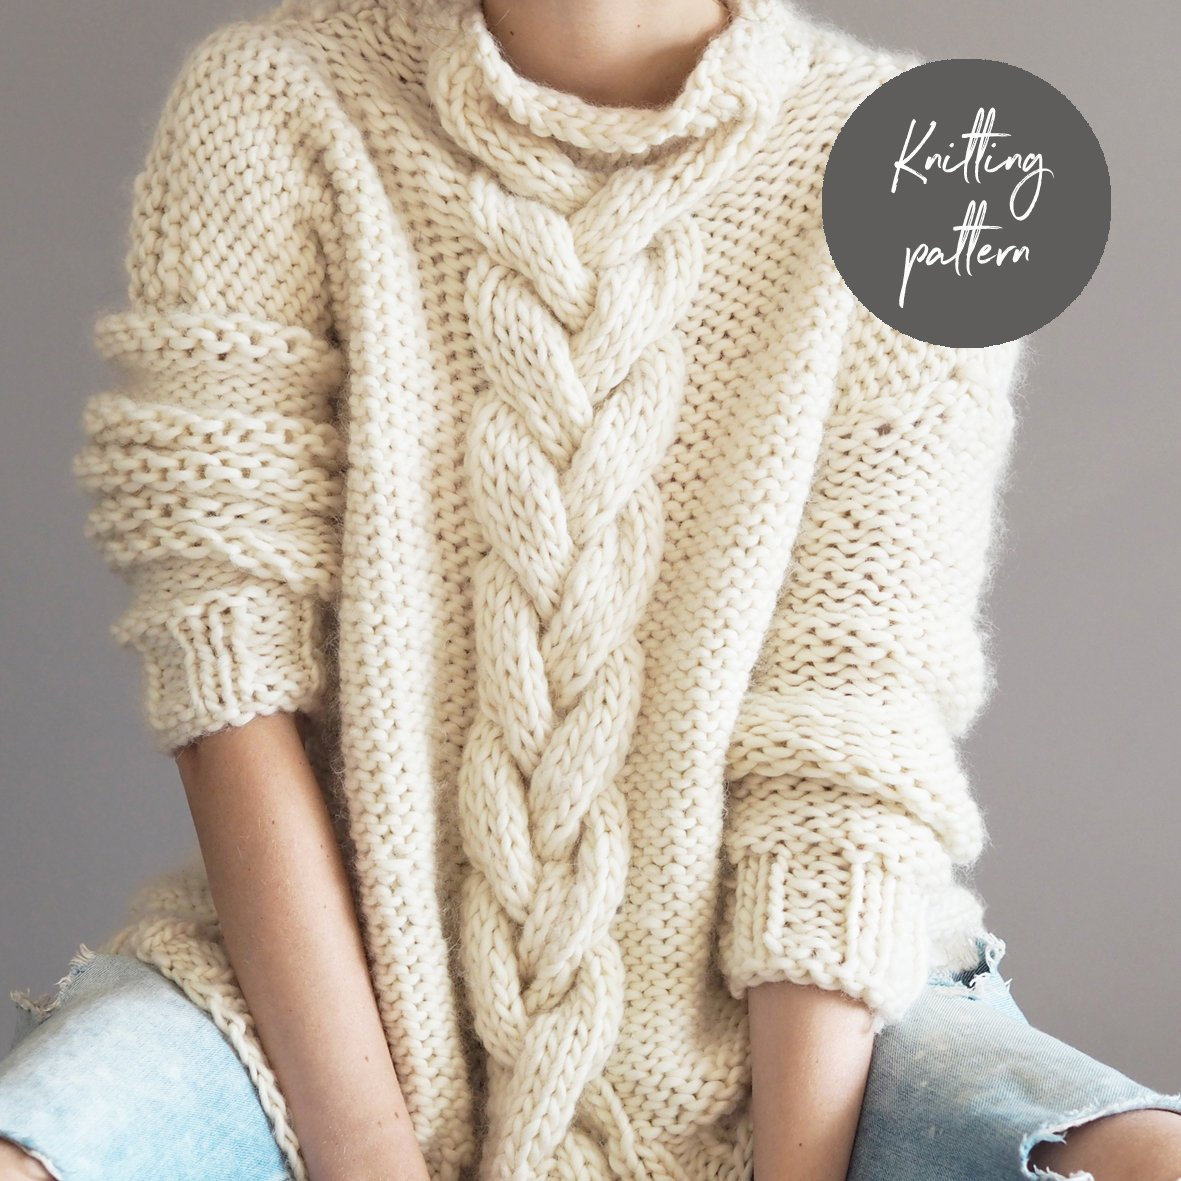 Knit Jumper Pattern Knitting Pattern Cable Knit Jumper Instant Download Sweater Etsy